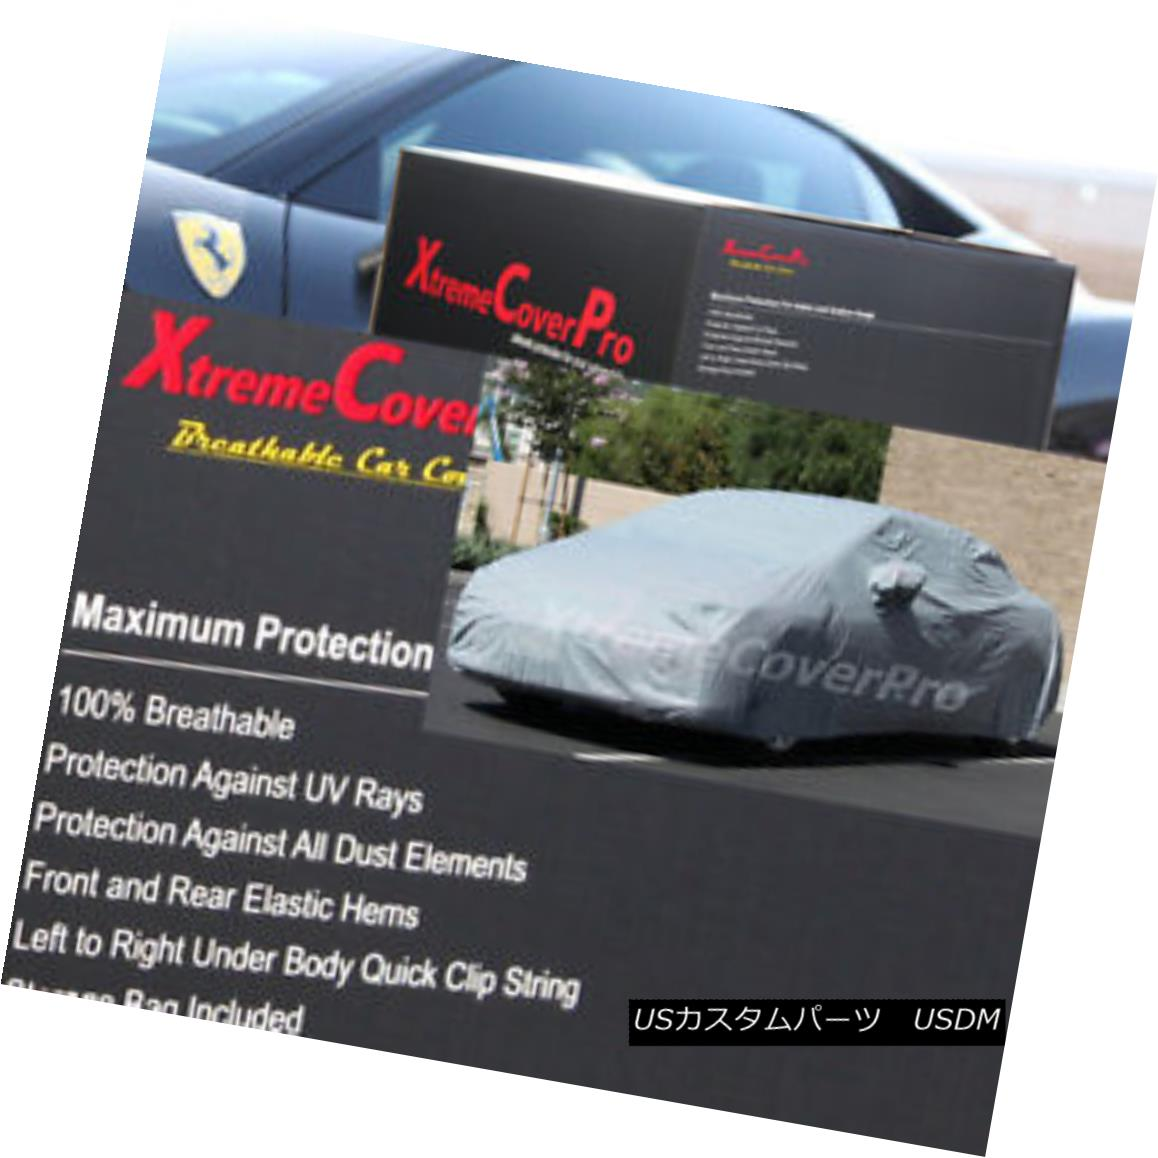 カーカバー 2004 2005 2006 2007 2008 Acura TL Breathable Car Cover w/MirrorPocket 2004年2005年2006年2007年2008年Acura TL通気性車カバー付きMirrorPocket